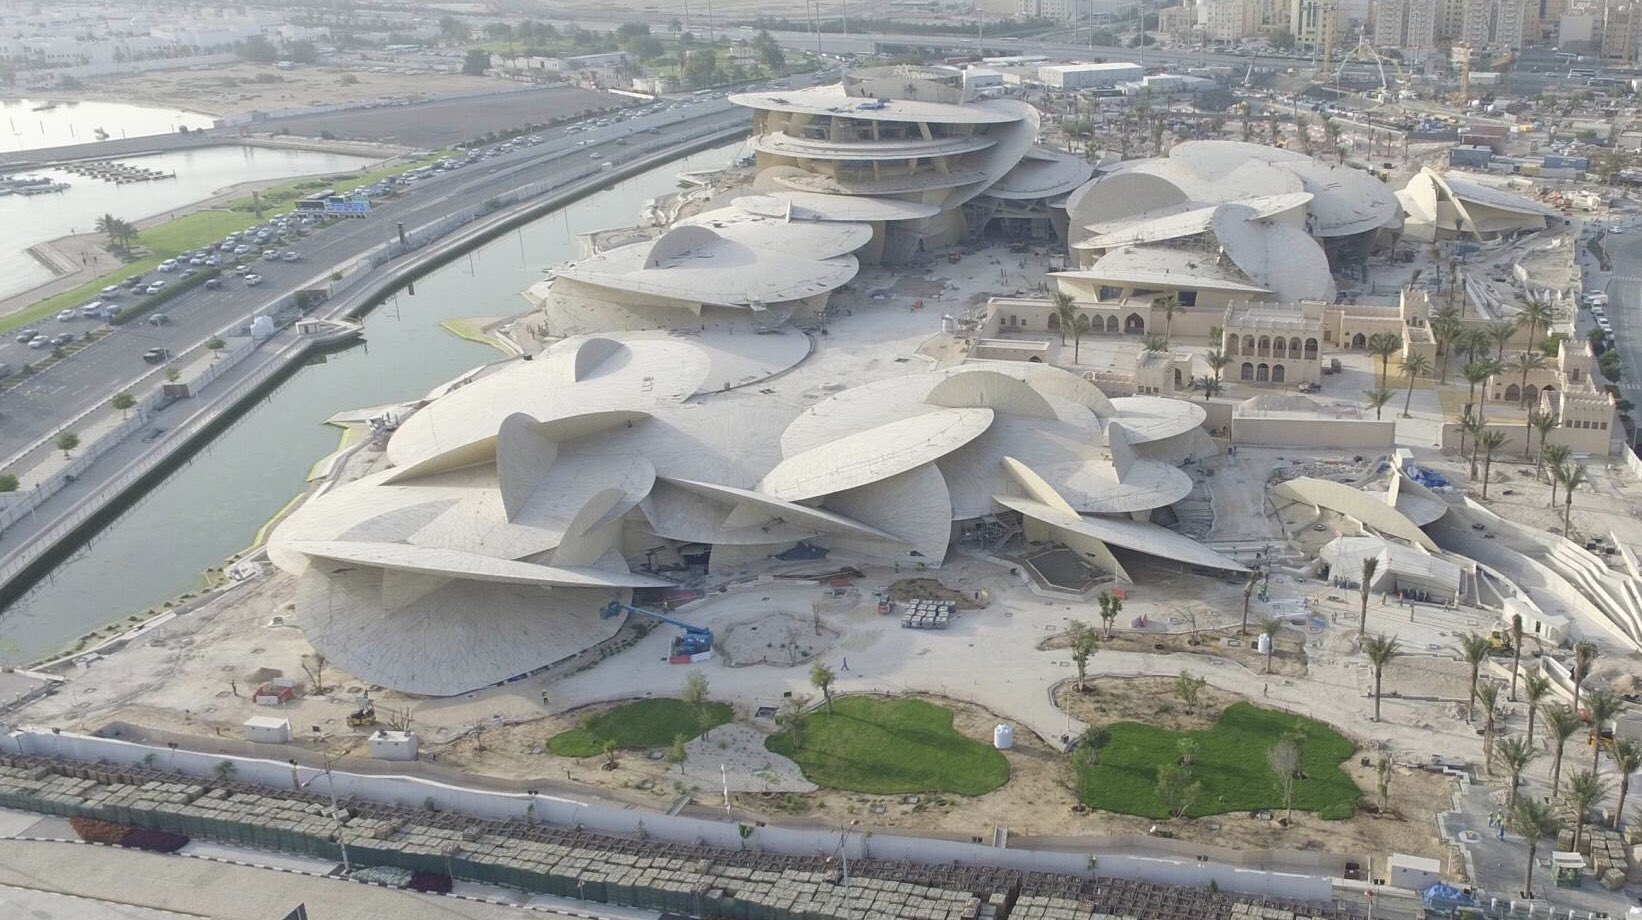 The National Museum of Qatar will showcase the past, present and future of #Qatar to the visitors and the upcoming generations. #NMoQ https://t.co/wVVPPXn4xg